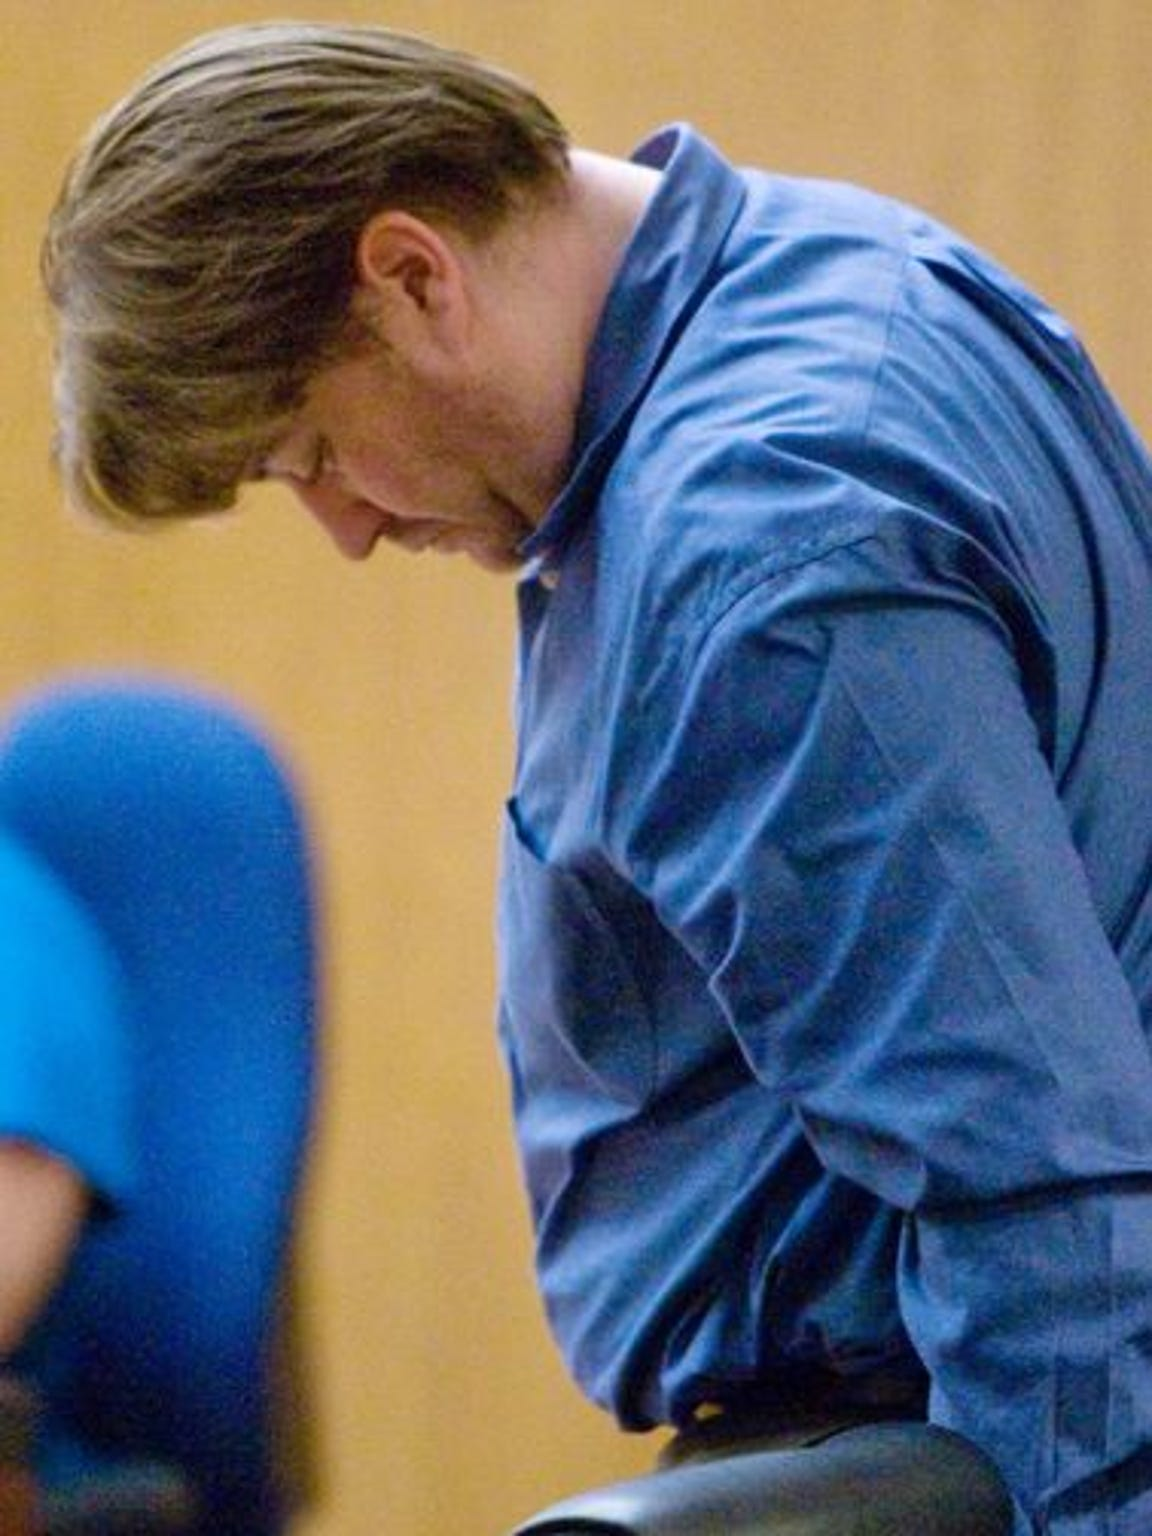 Sam Dieteman looks down during court shortly after